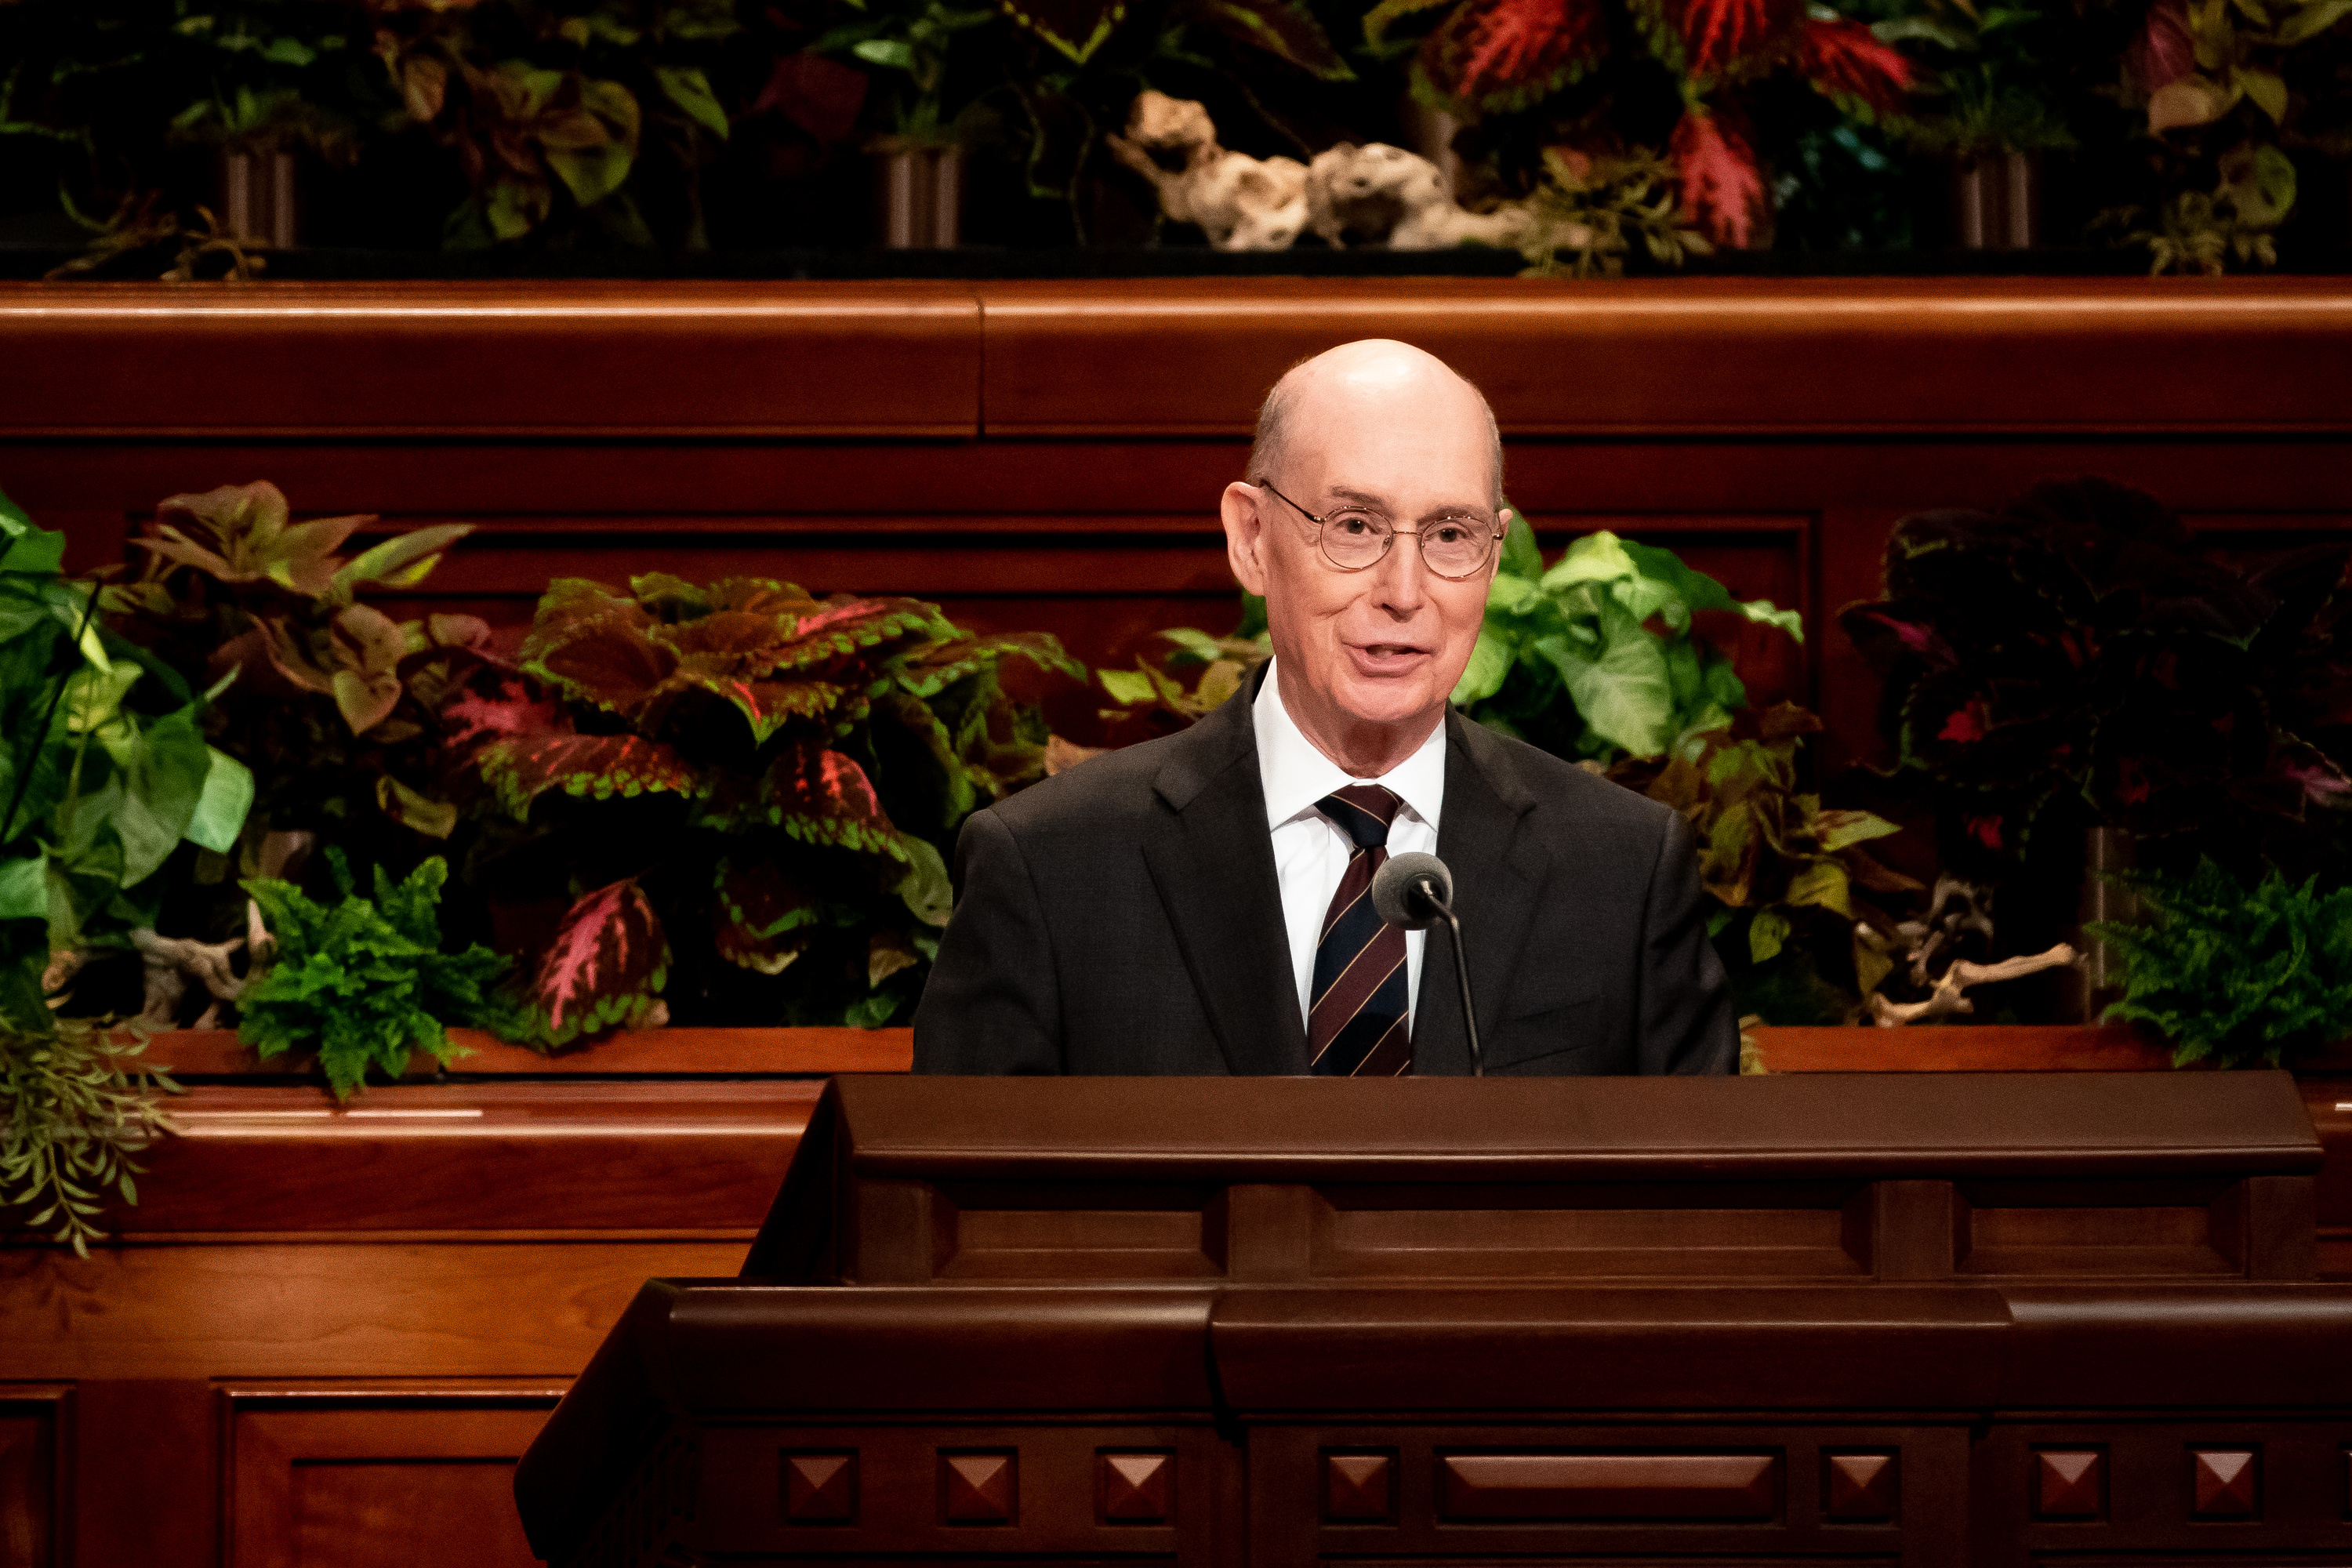 President Henry B. Eyring, second counselor in the First Presidency, conducts the 189th Semiannual General Conference of The Church of Jesus Christ of Latter-day Saints at the Conference Center in Salt Lake City on Saturday, Oct. 5, 2019.